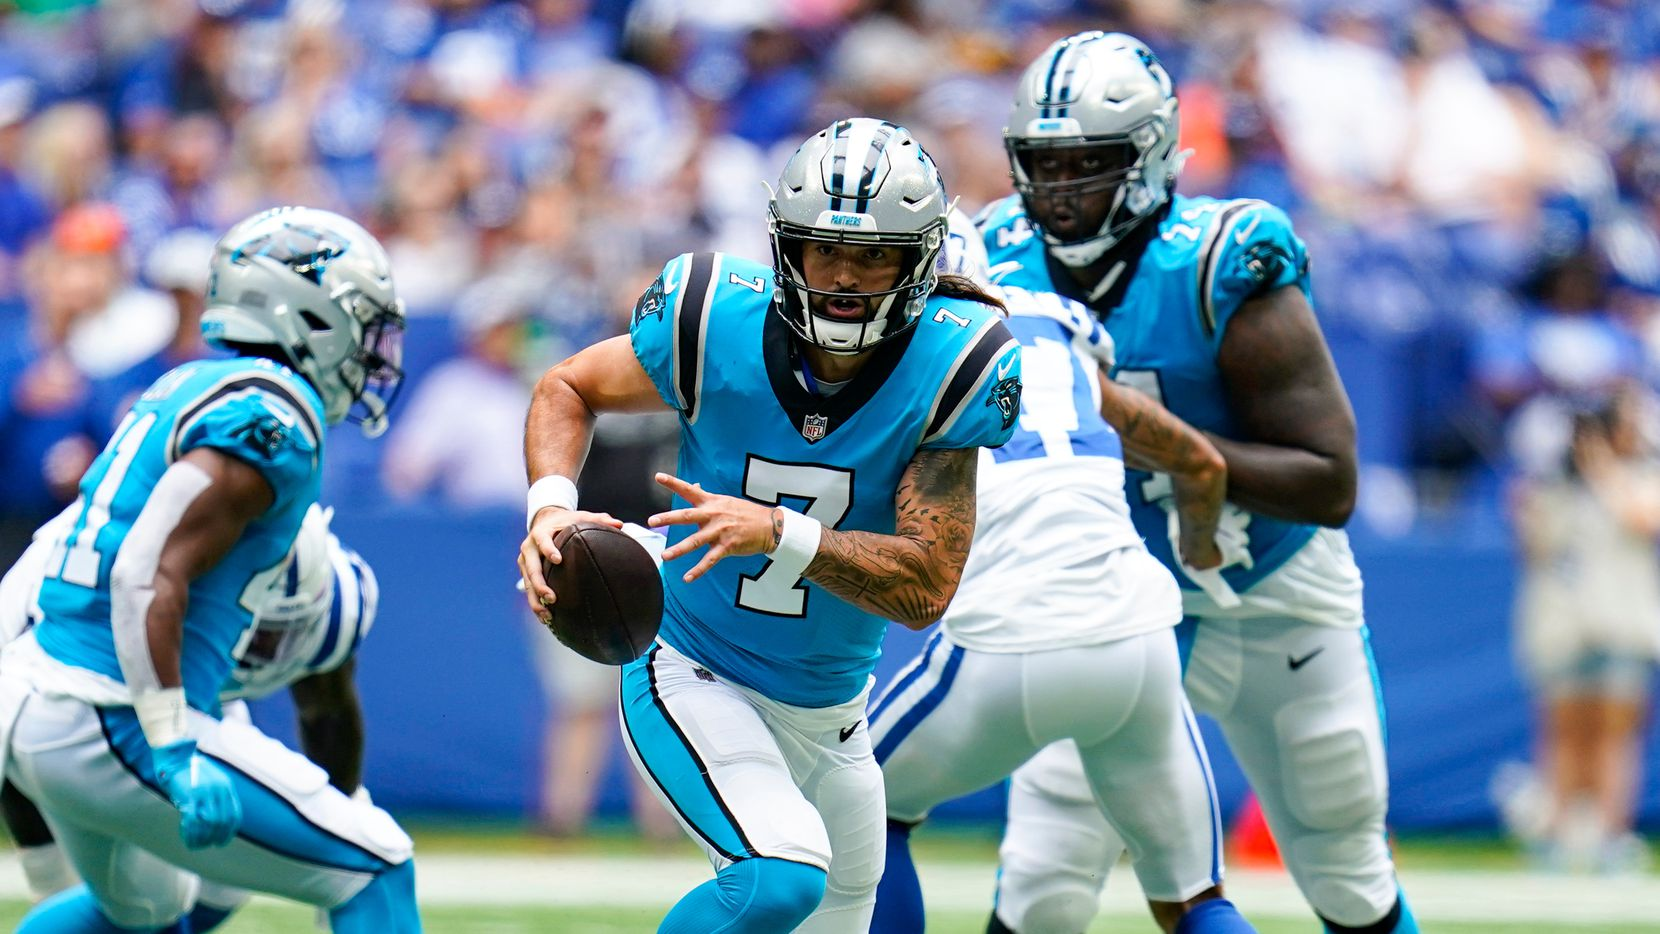 Carolina Panthers quarterback Will Grier (7) scrambles against the Indianapolis Colts during the second half of an NFL exhibition football game in Indianapolis, Sunday, Aug. 15, 2021.